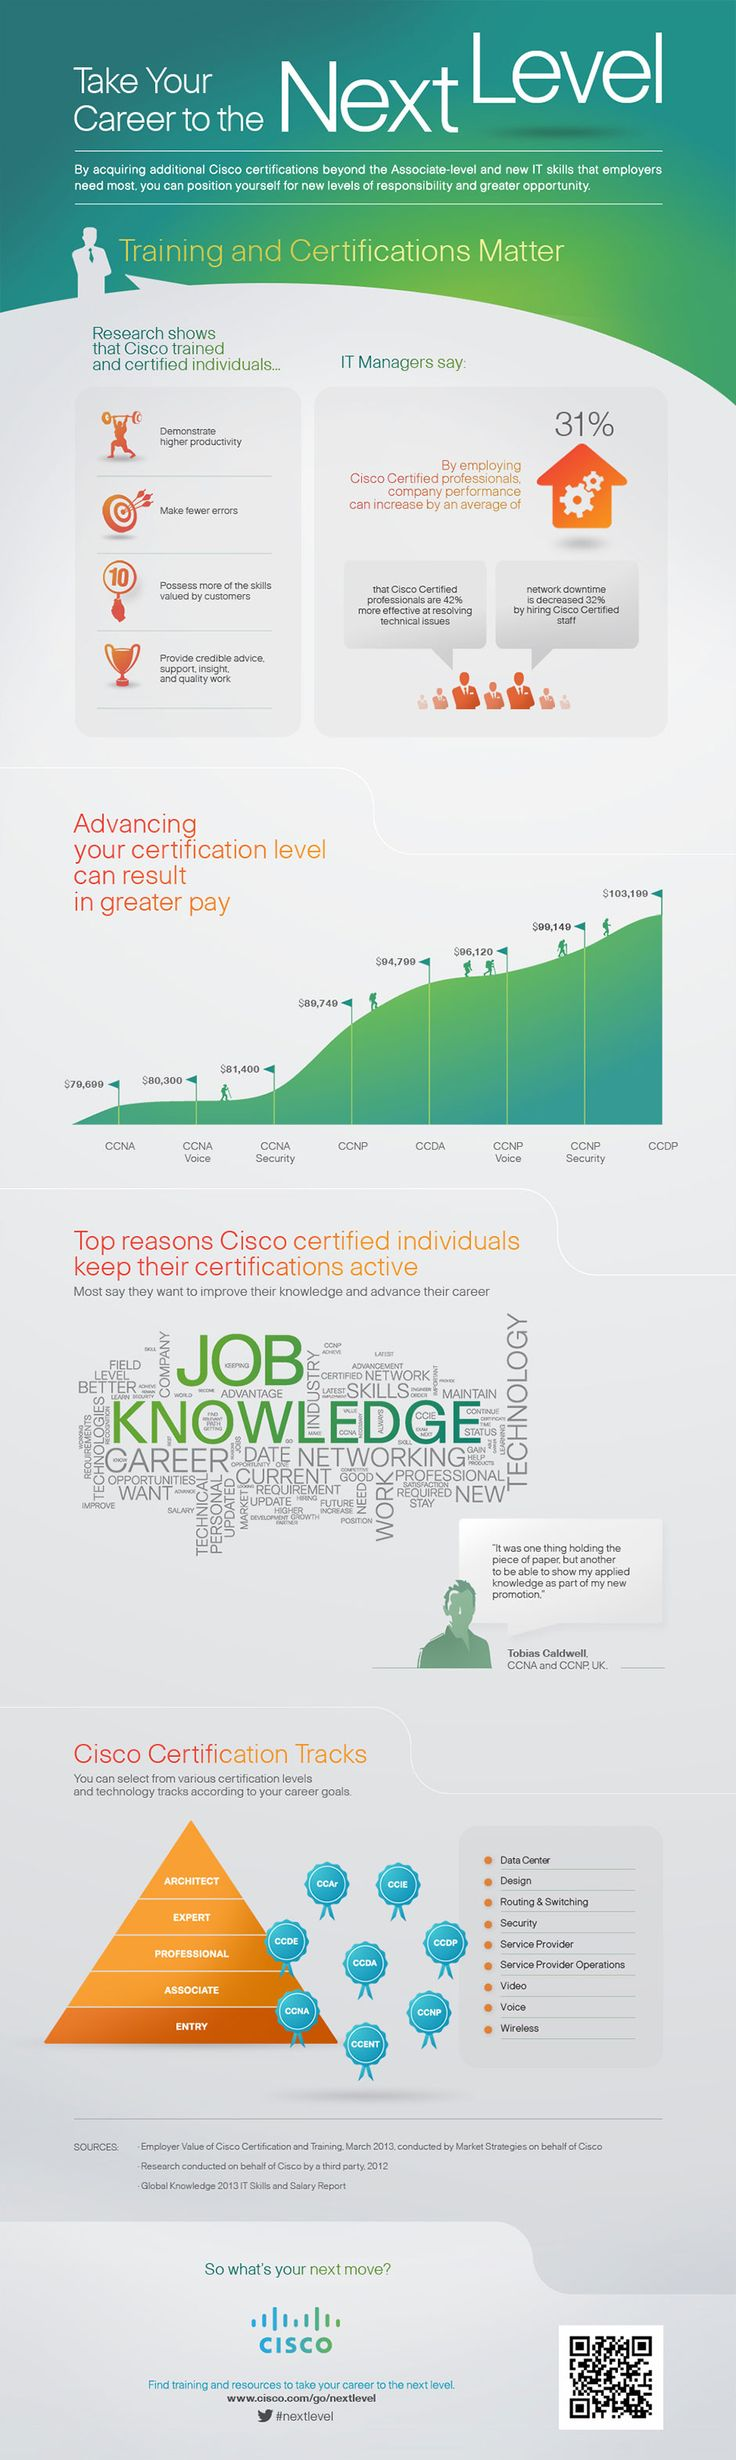 best ideas about cisco certifications learn how cisco certifications can help advance careers influence salaries and enable certified professionals